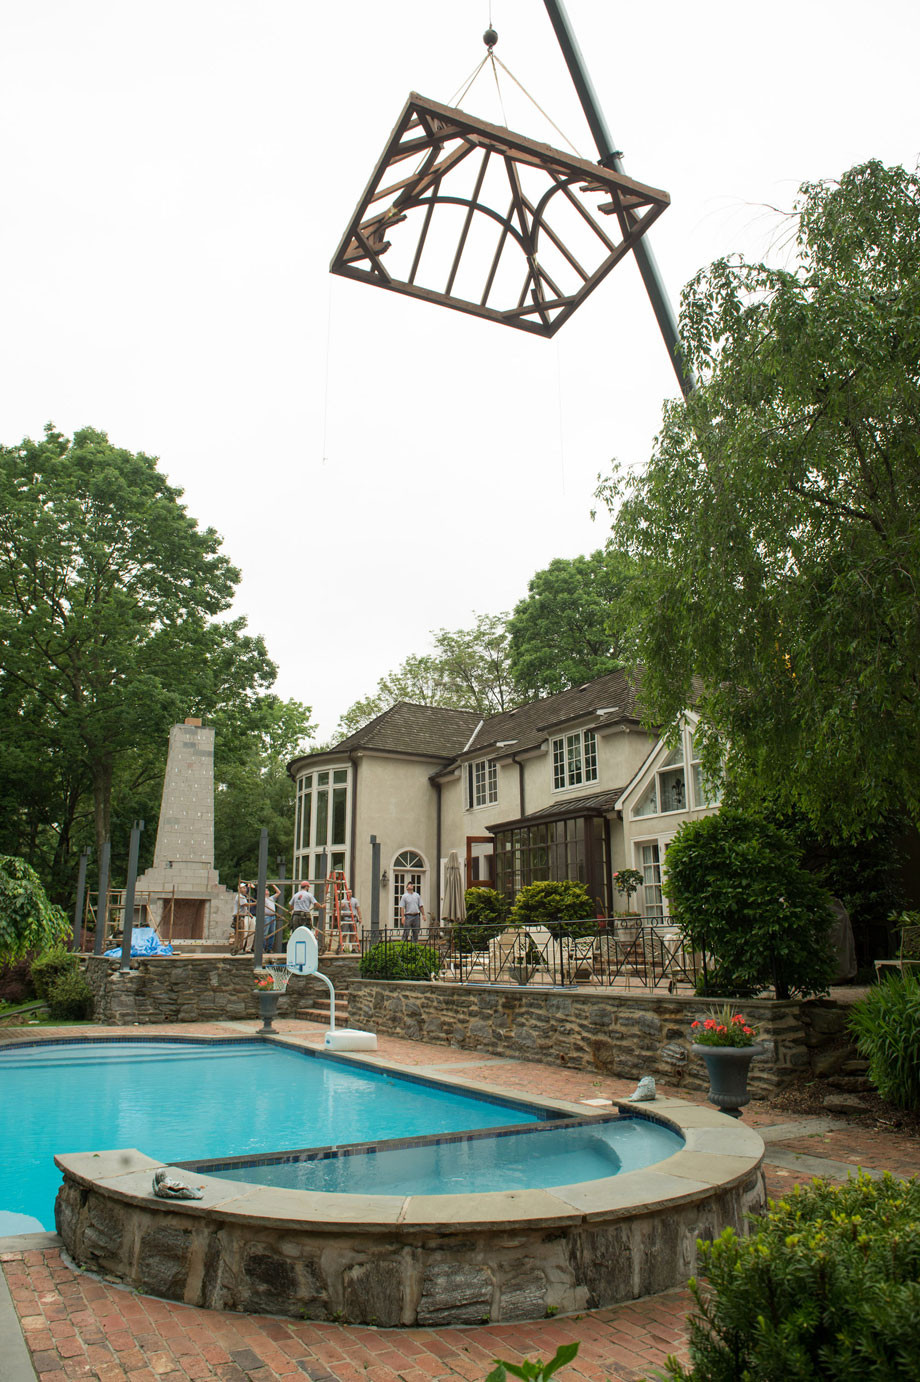 10-HLTF-Pool-House-Gladwyne-120